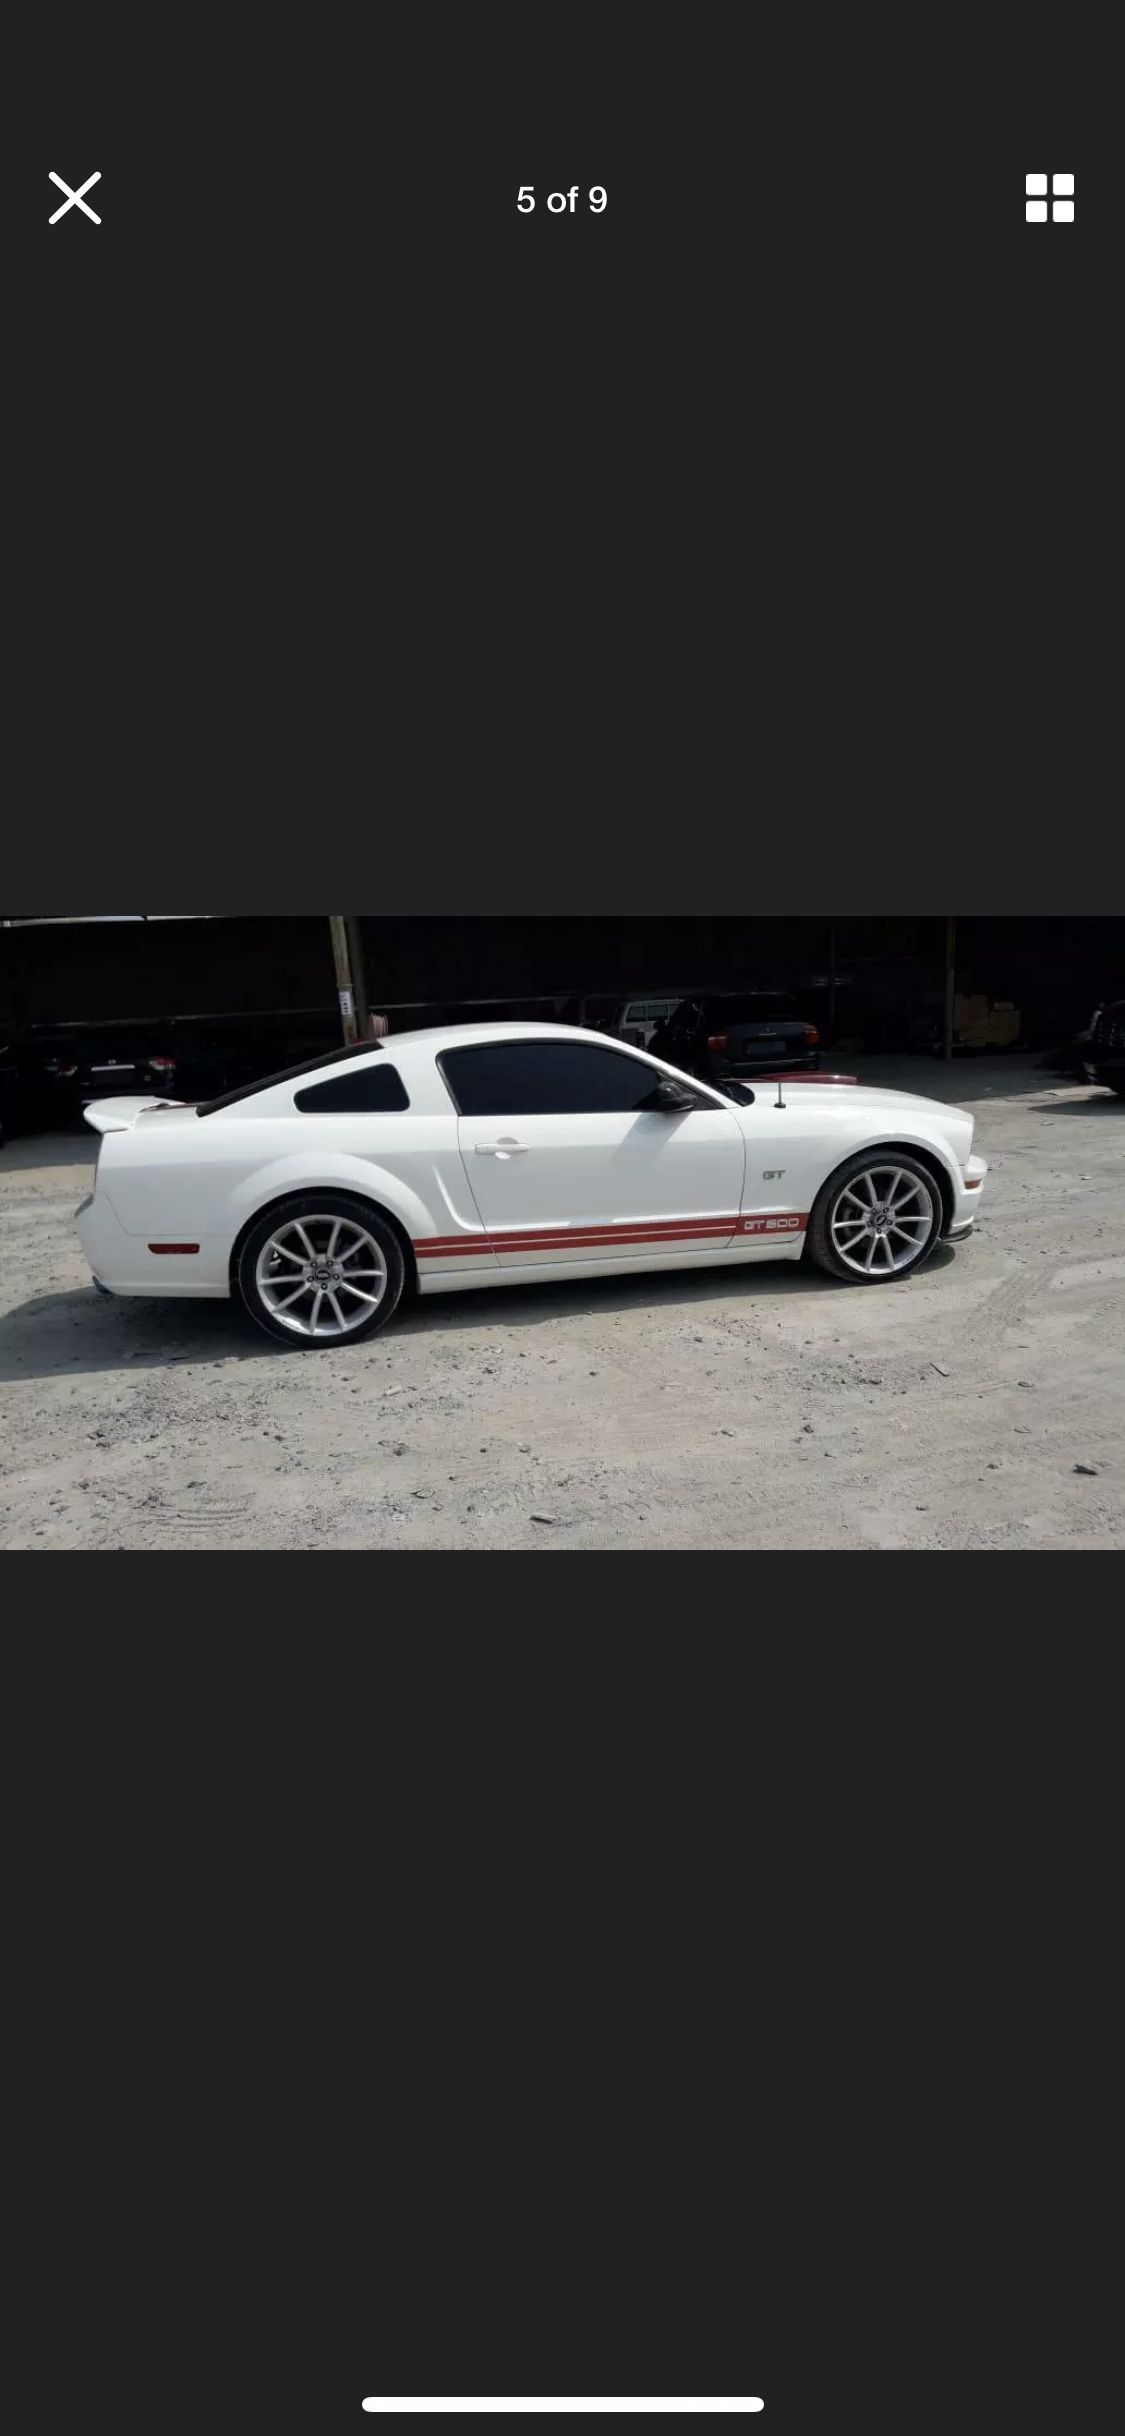 2008 FORD MUSTANG 4.6 V8 GT RARE MANUAL  LHD FRESH IMPORT For Sale (picture 5 of 6)